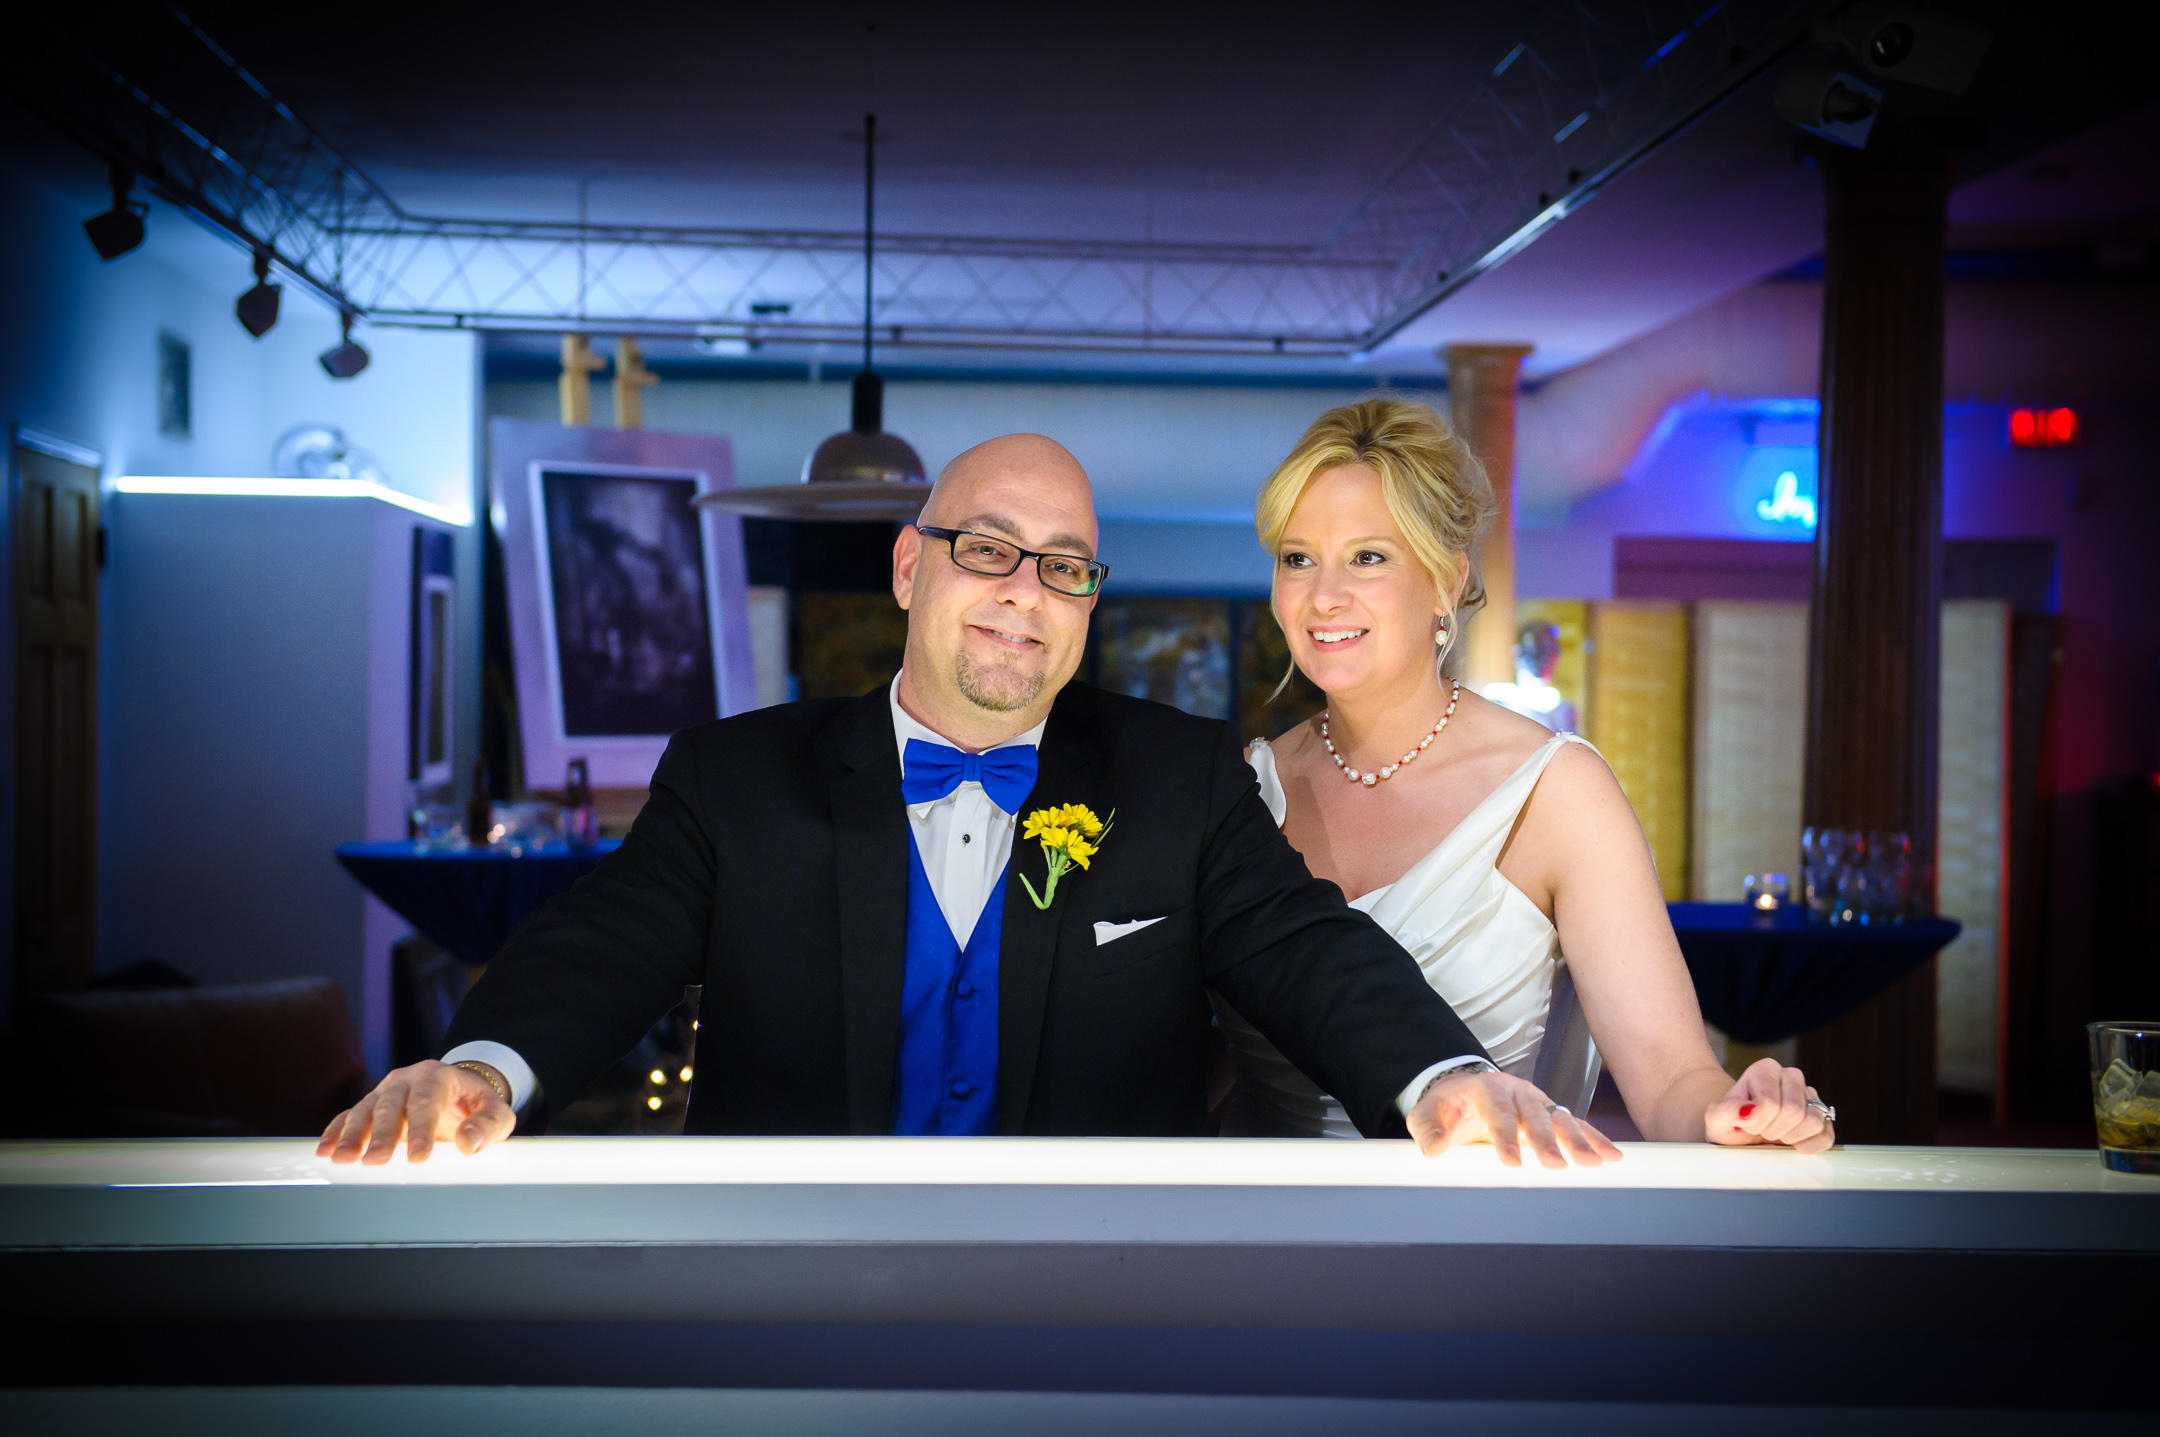 Jason + Shelley | #ChicagoWedding